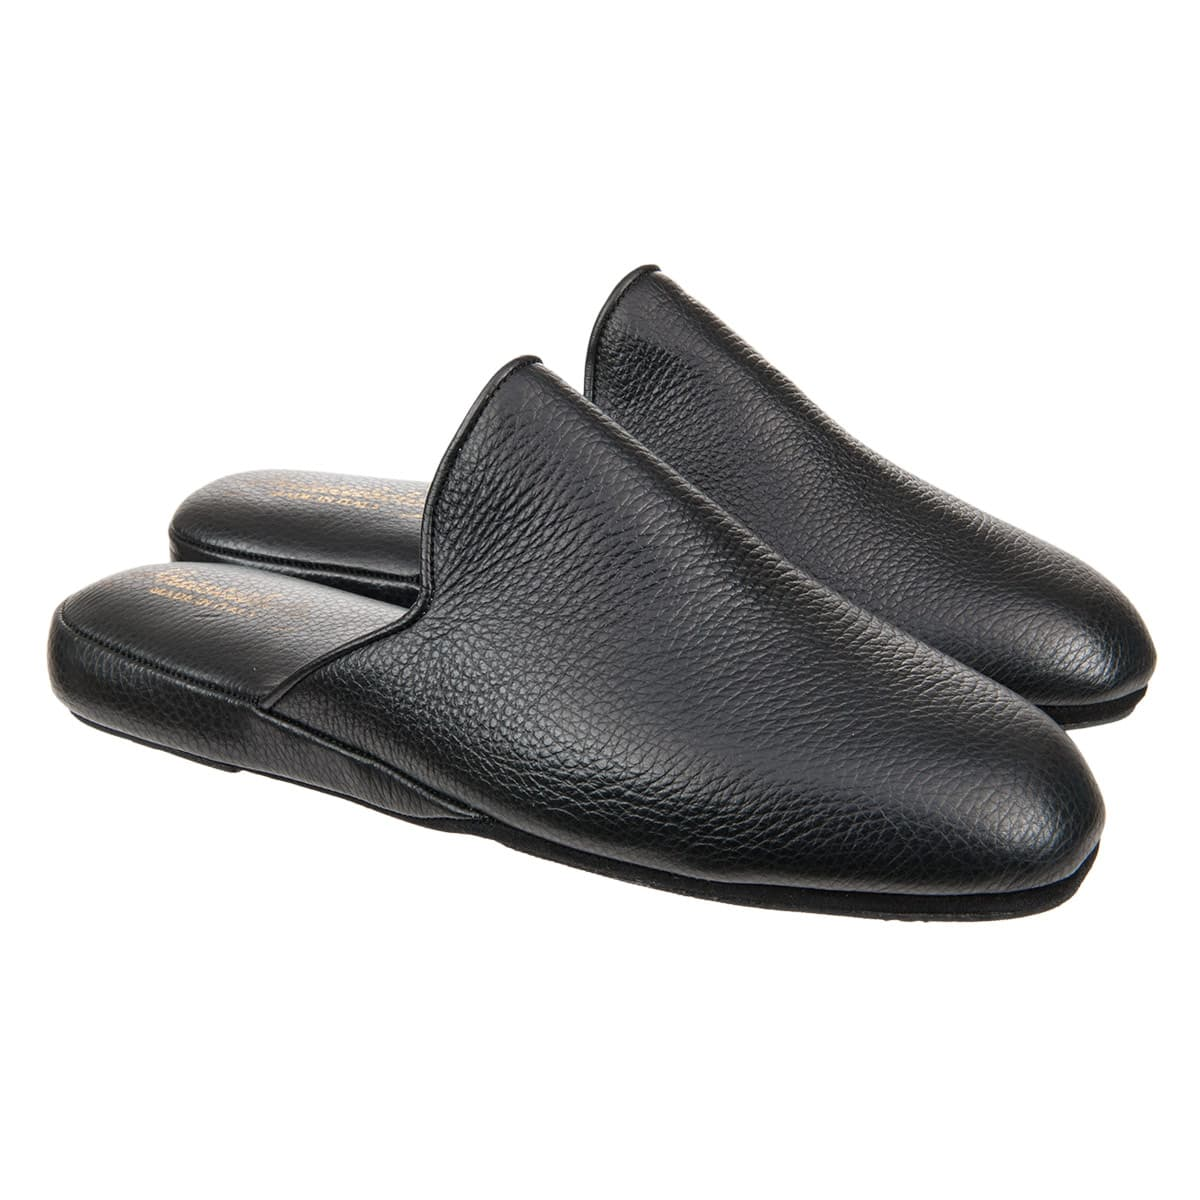 leather slippers with anti slip sole